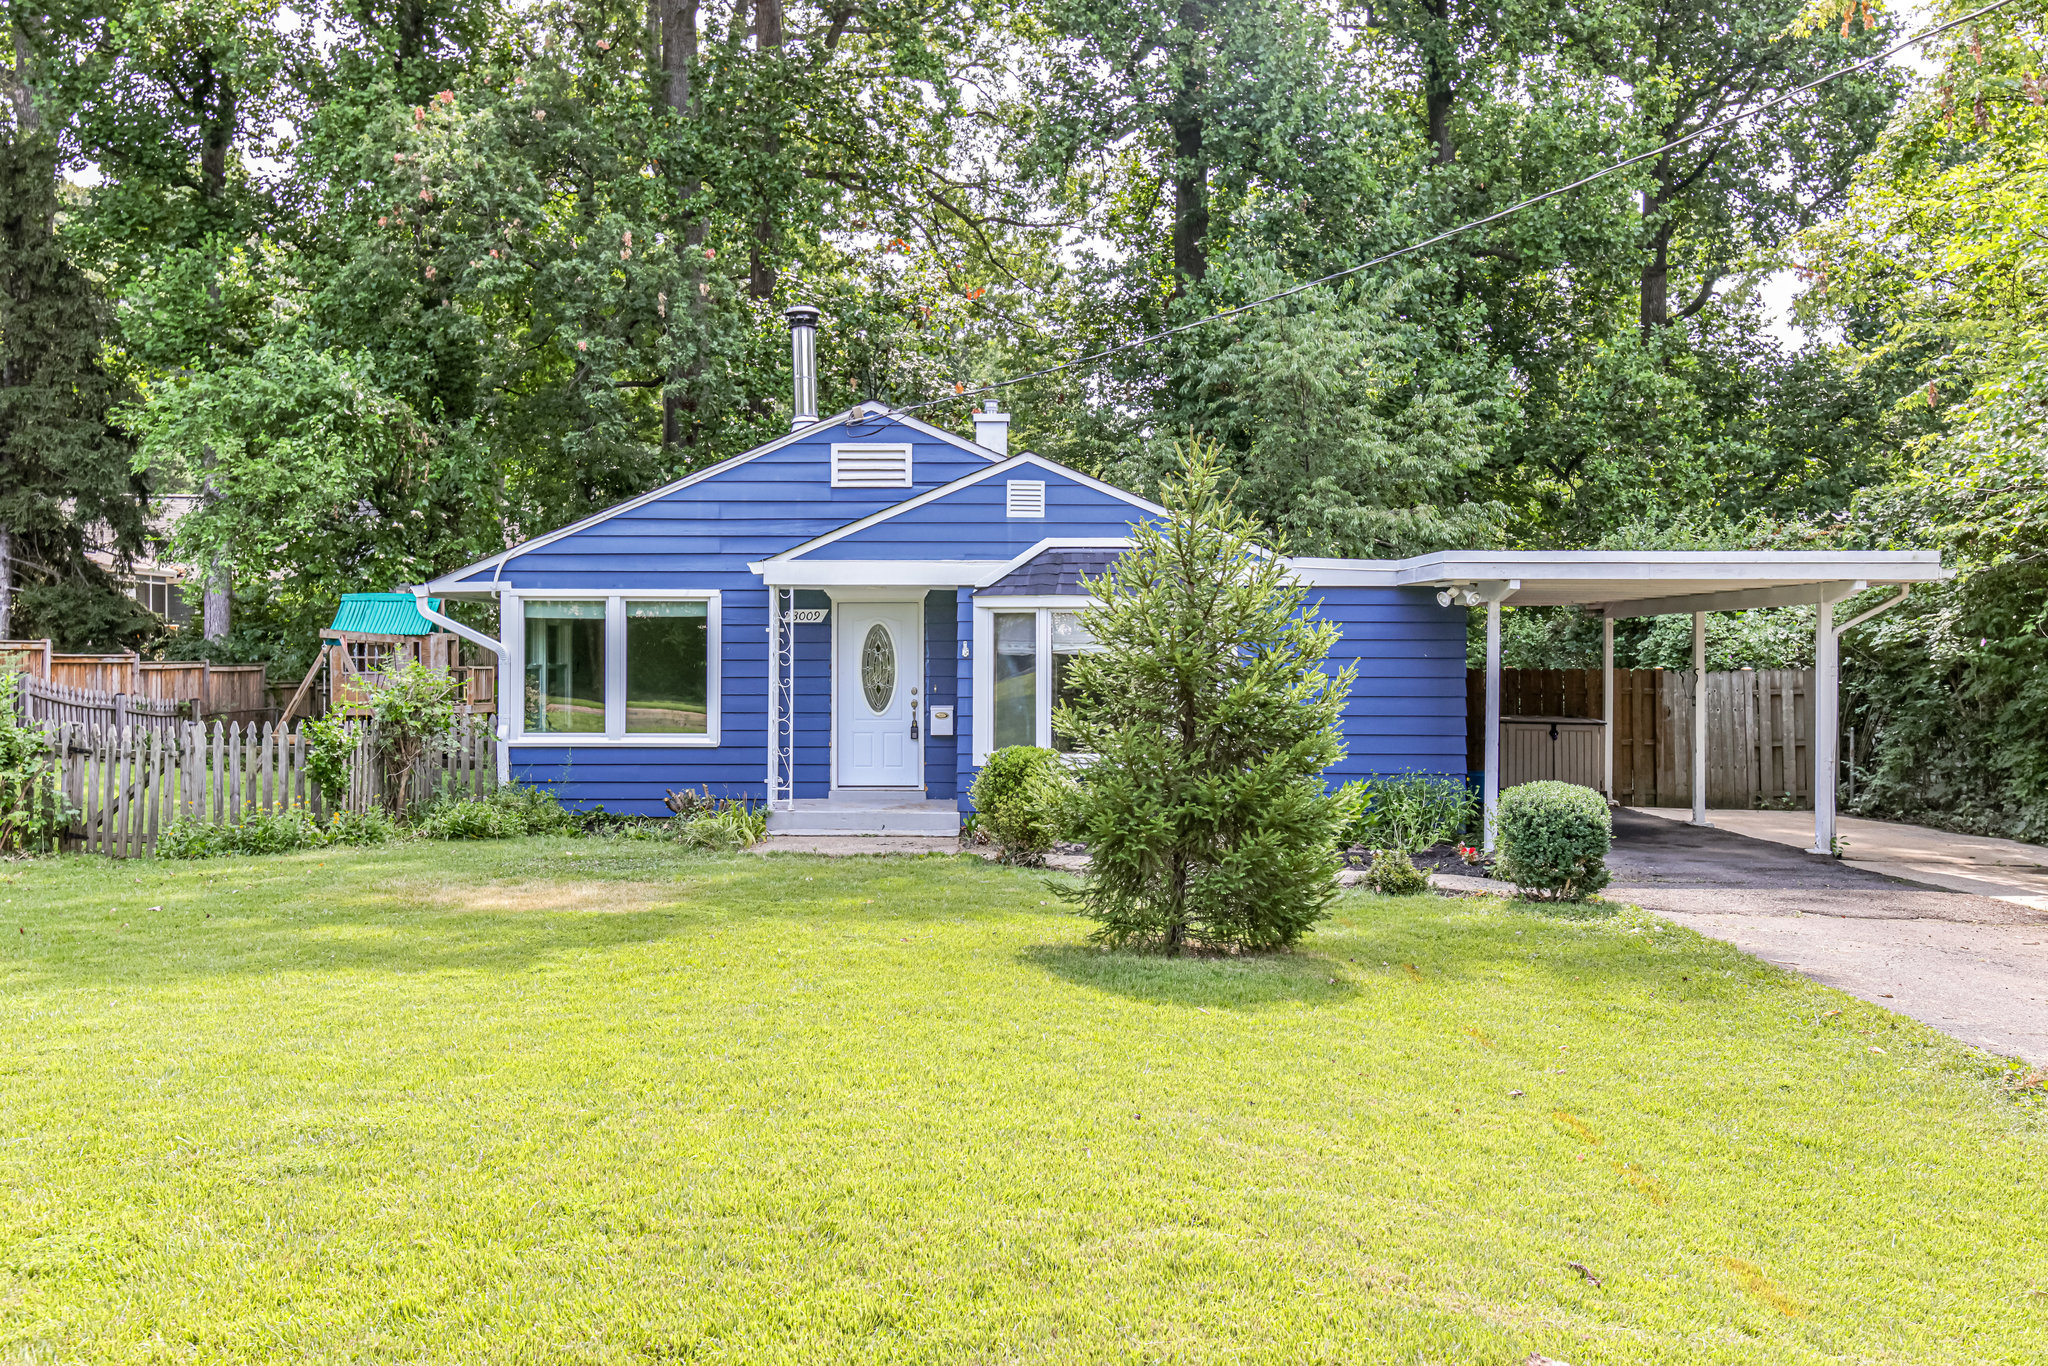 3009 Wallace Drive, Falls Church- For Sale